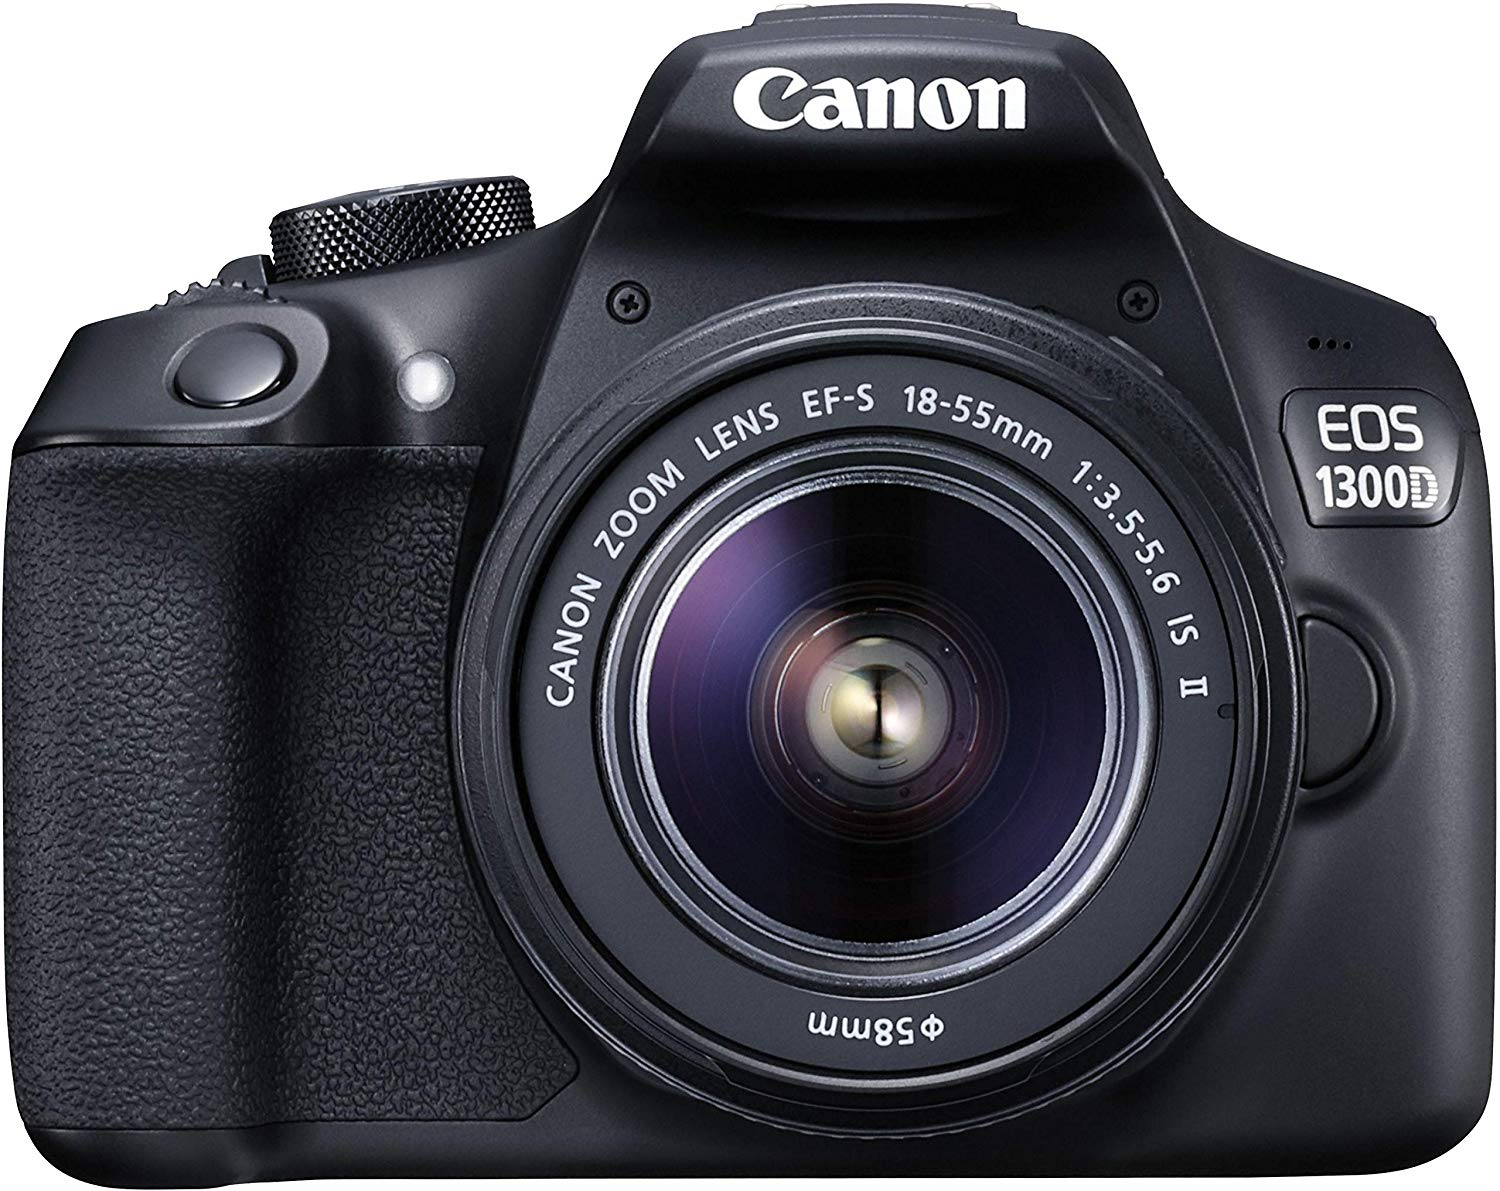 Canon EOS 1300D 18MP Digital SLR Camera Black Digital Camera get best offers deals free and coupons online at buythevalue.in